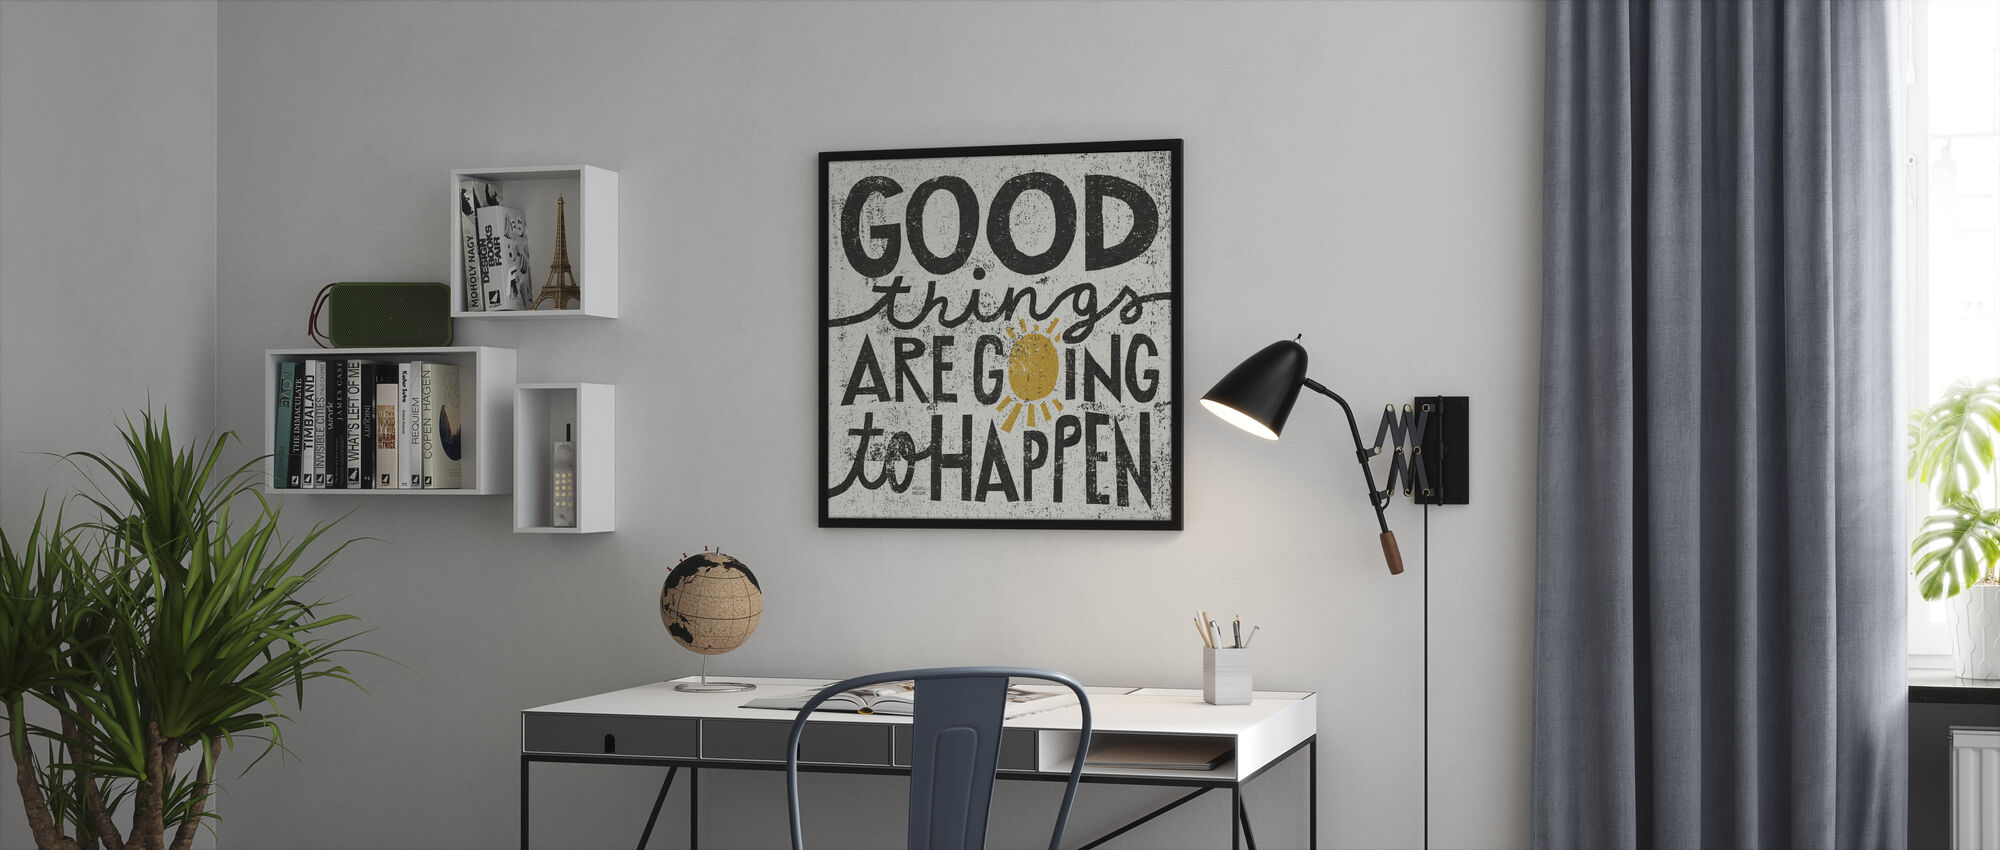 Good Things are Going to Happen - Framed print - Office